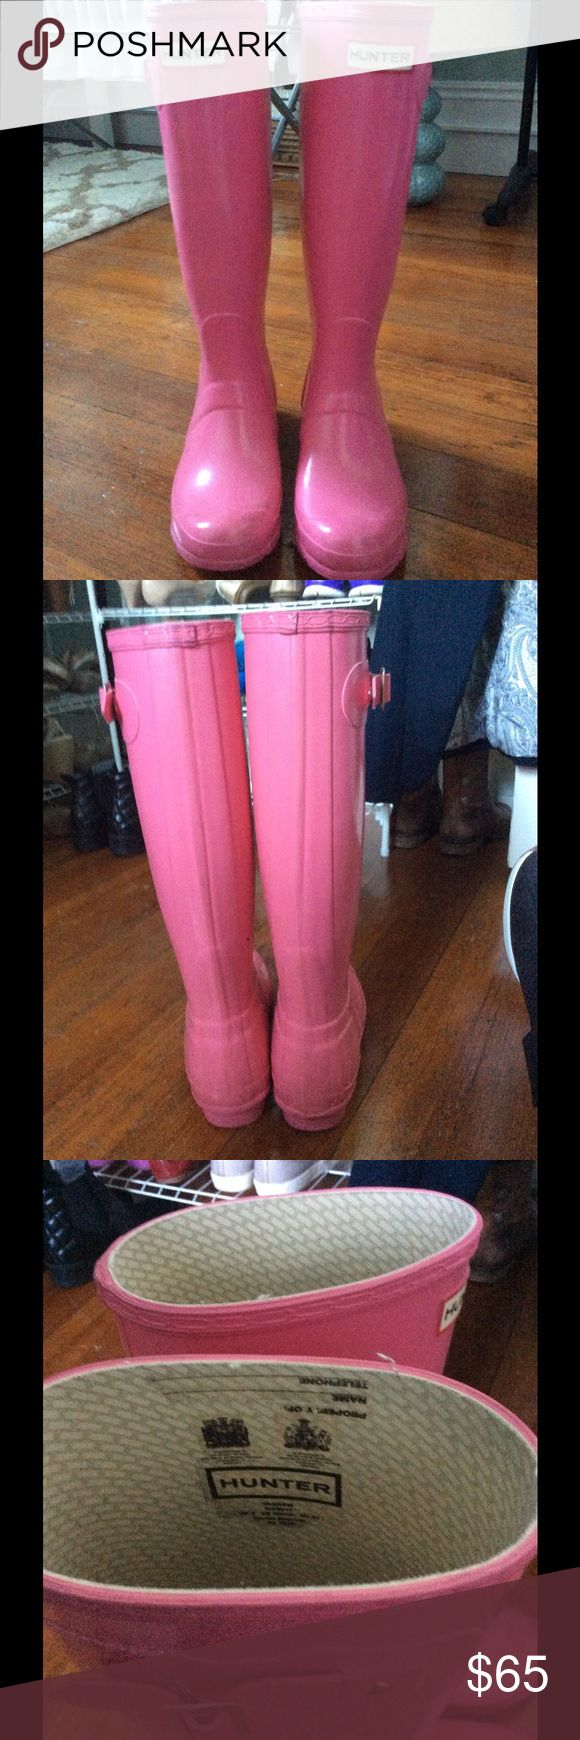 Pink Hunter Rain Boots - Size 6 Size 6 pink hunter rain boots. I am a 6.5 and these fit me perfectly. Hunter Boots Shoes Winter & Rain Boots